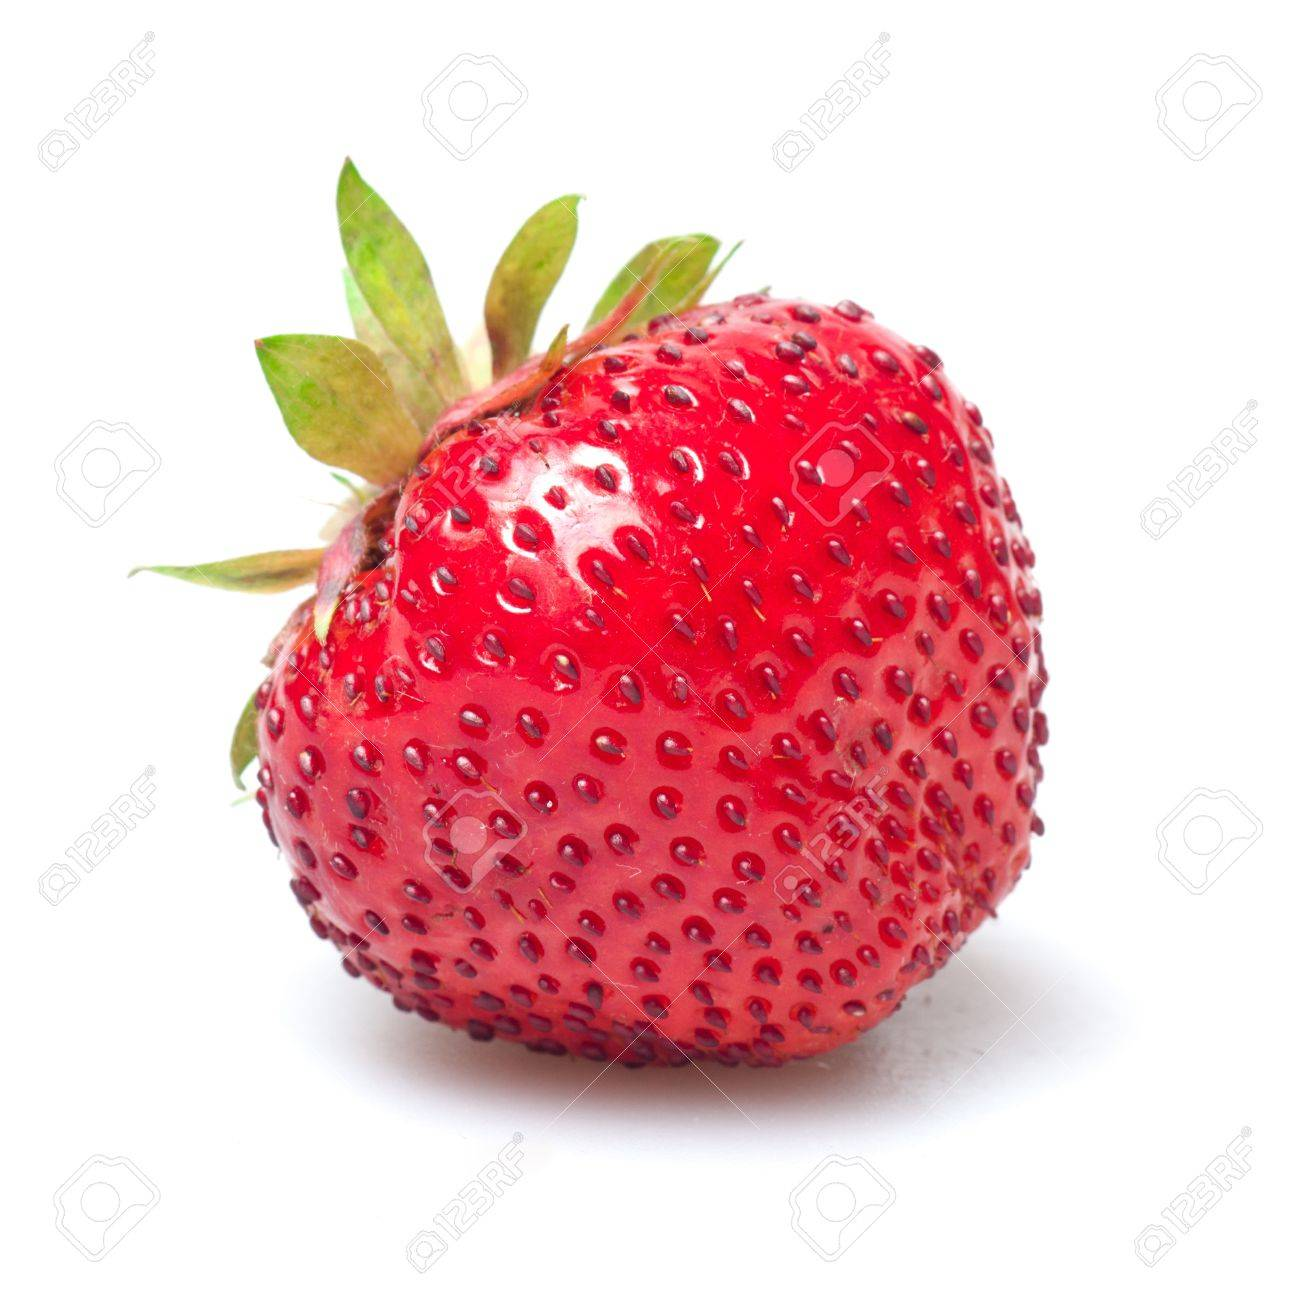 red strawberry isolated on white - 9719131